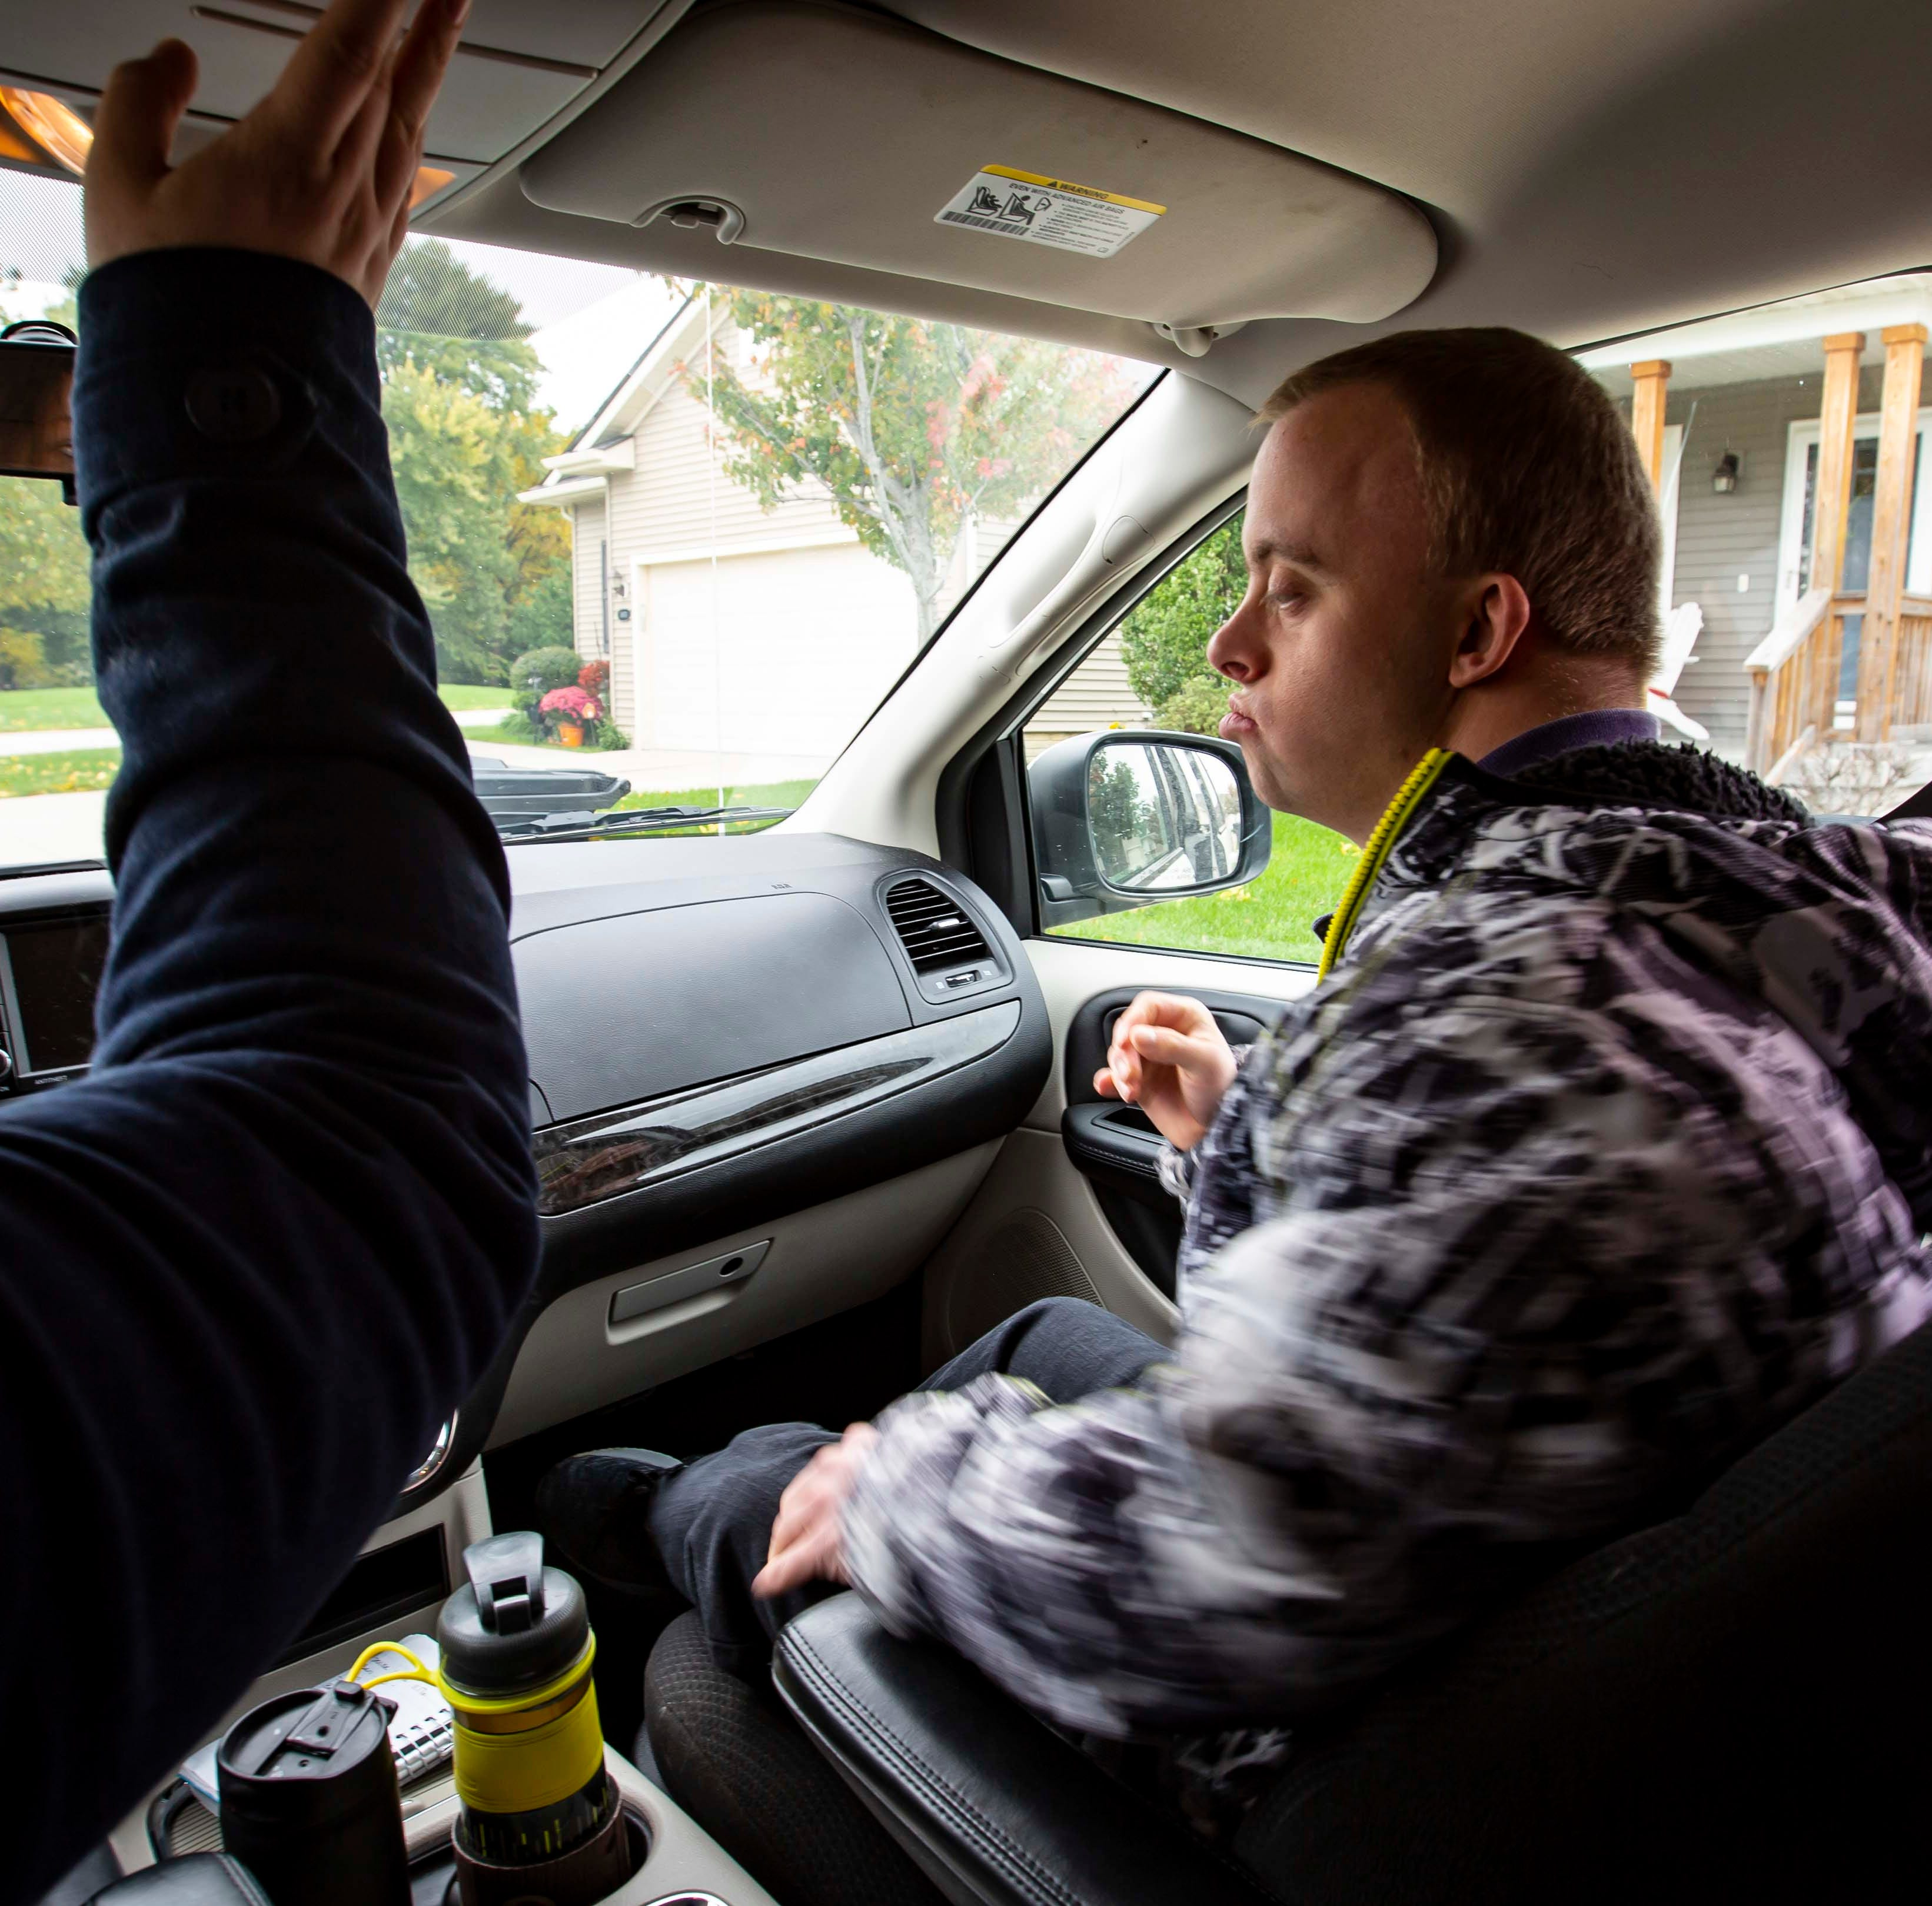 Advocates: Iowa Medicaid shift on transportation billing hurts disabled clients, providers